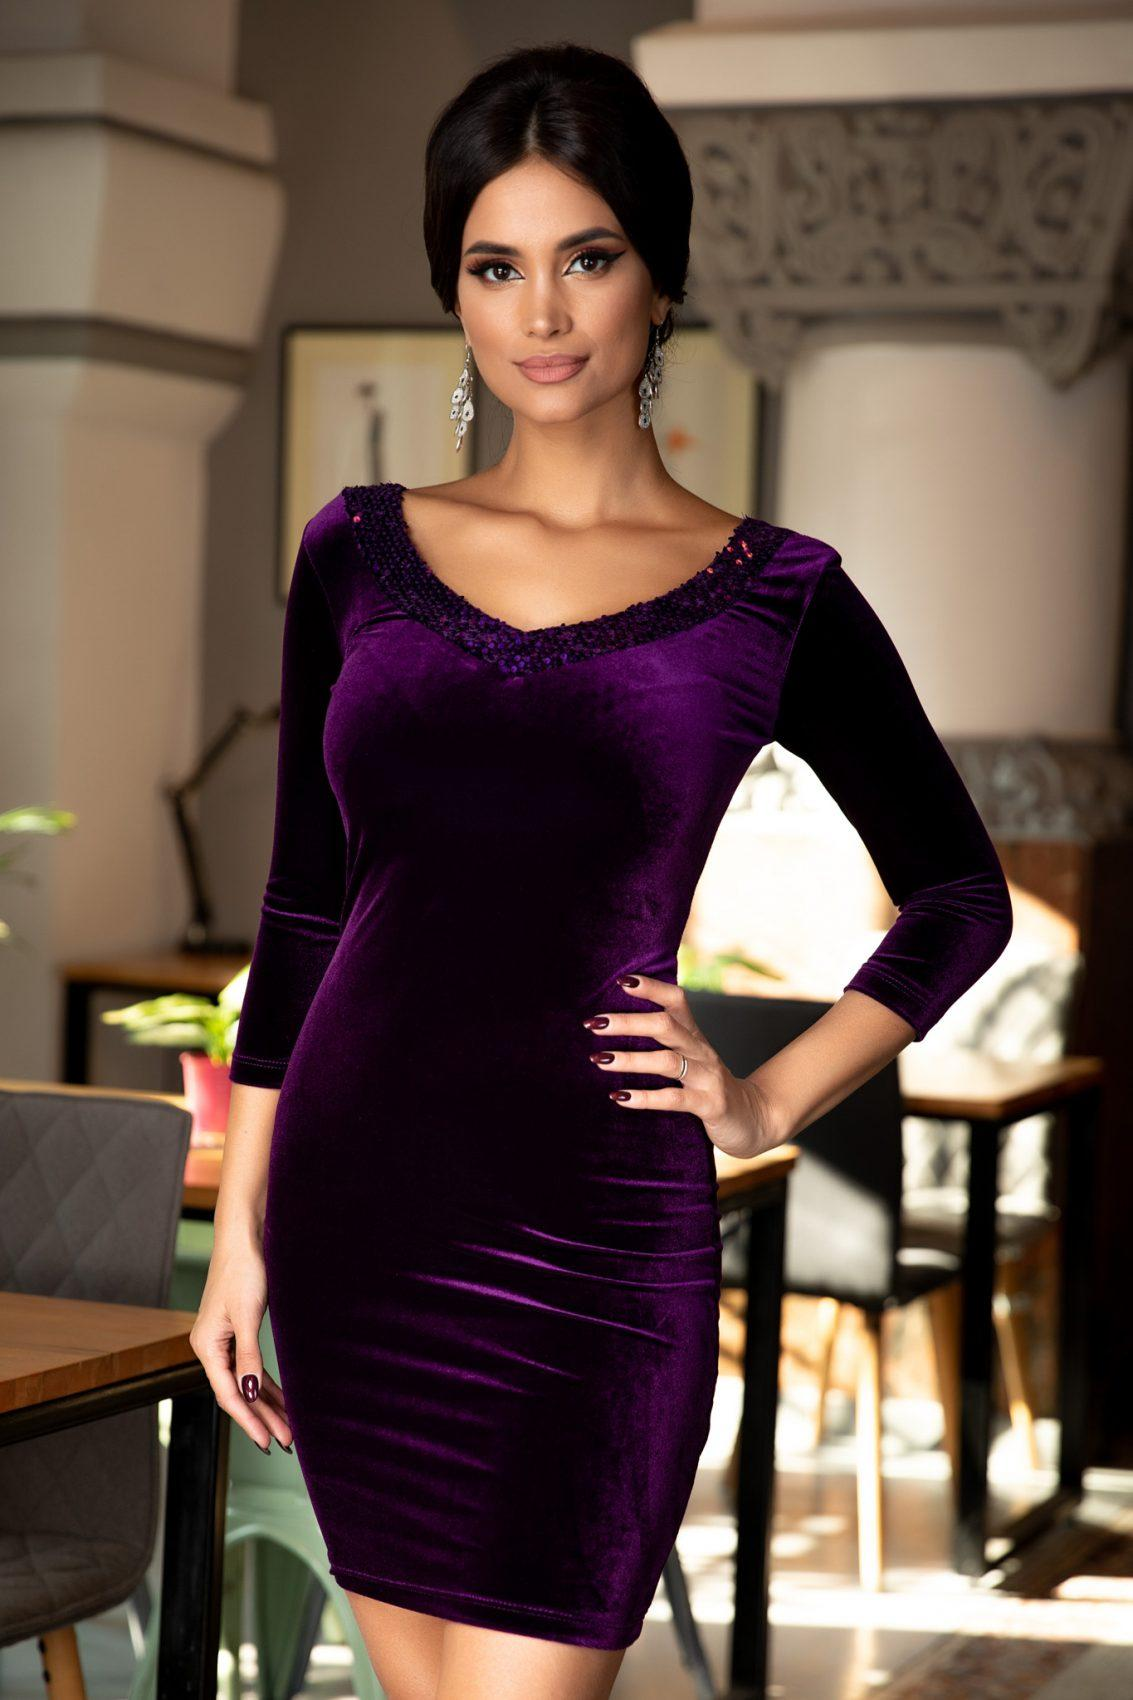 Darya Purple Dress